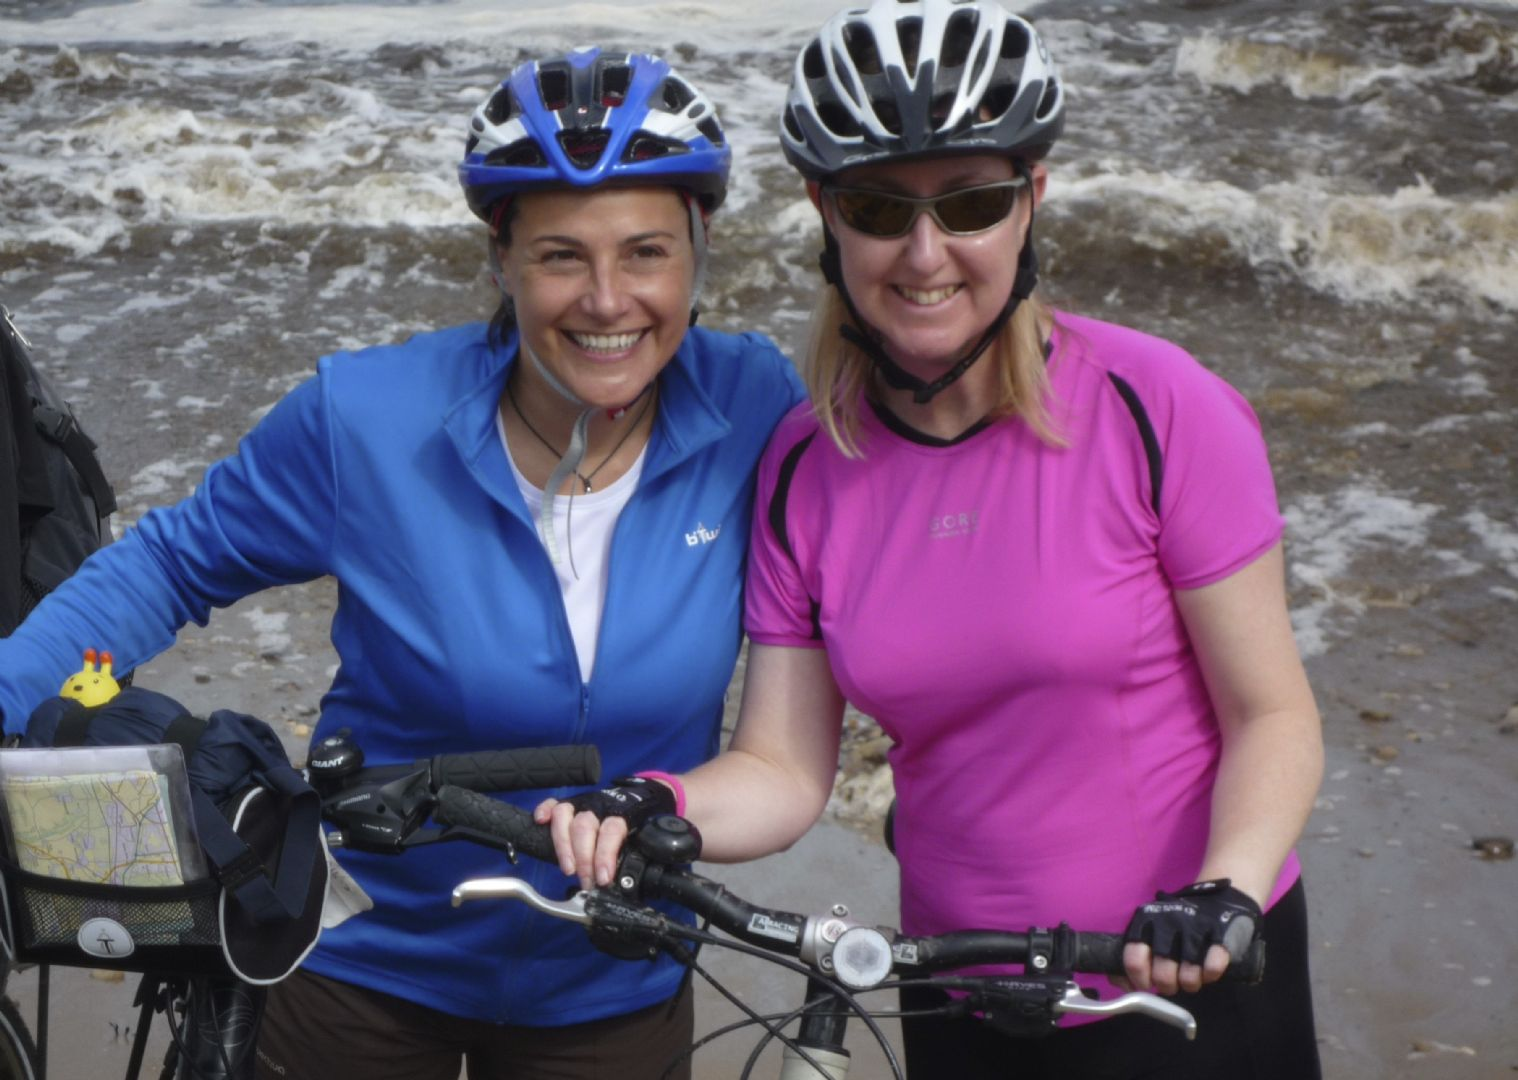 _Customer.36146.1962.jpg - UK - C2C - Coast to Coast 3 Days Cycling - Self-Guided Leisure Cycling Holiday - Leisure Cycling